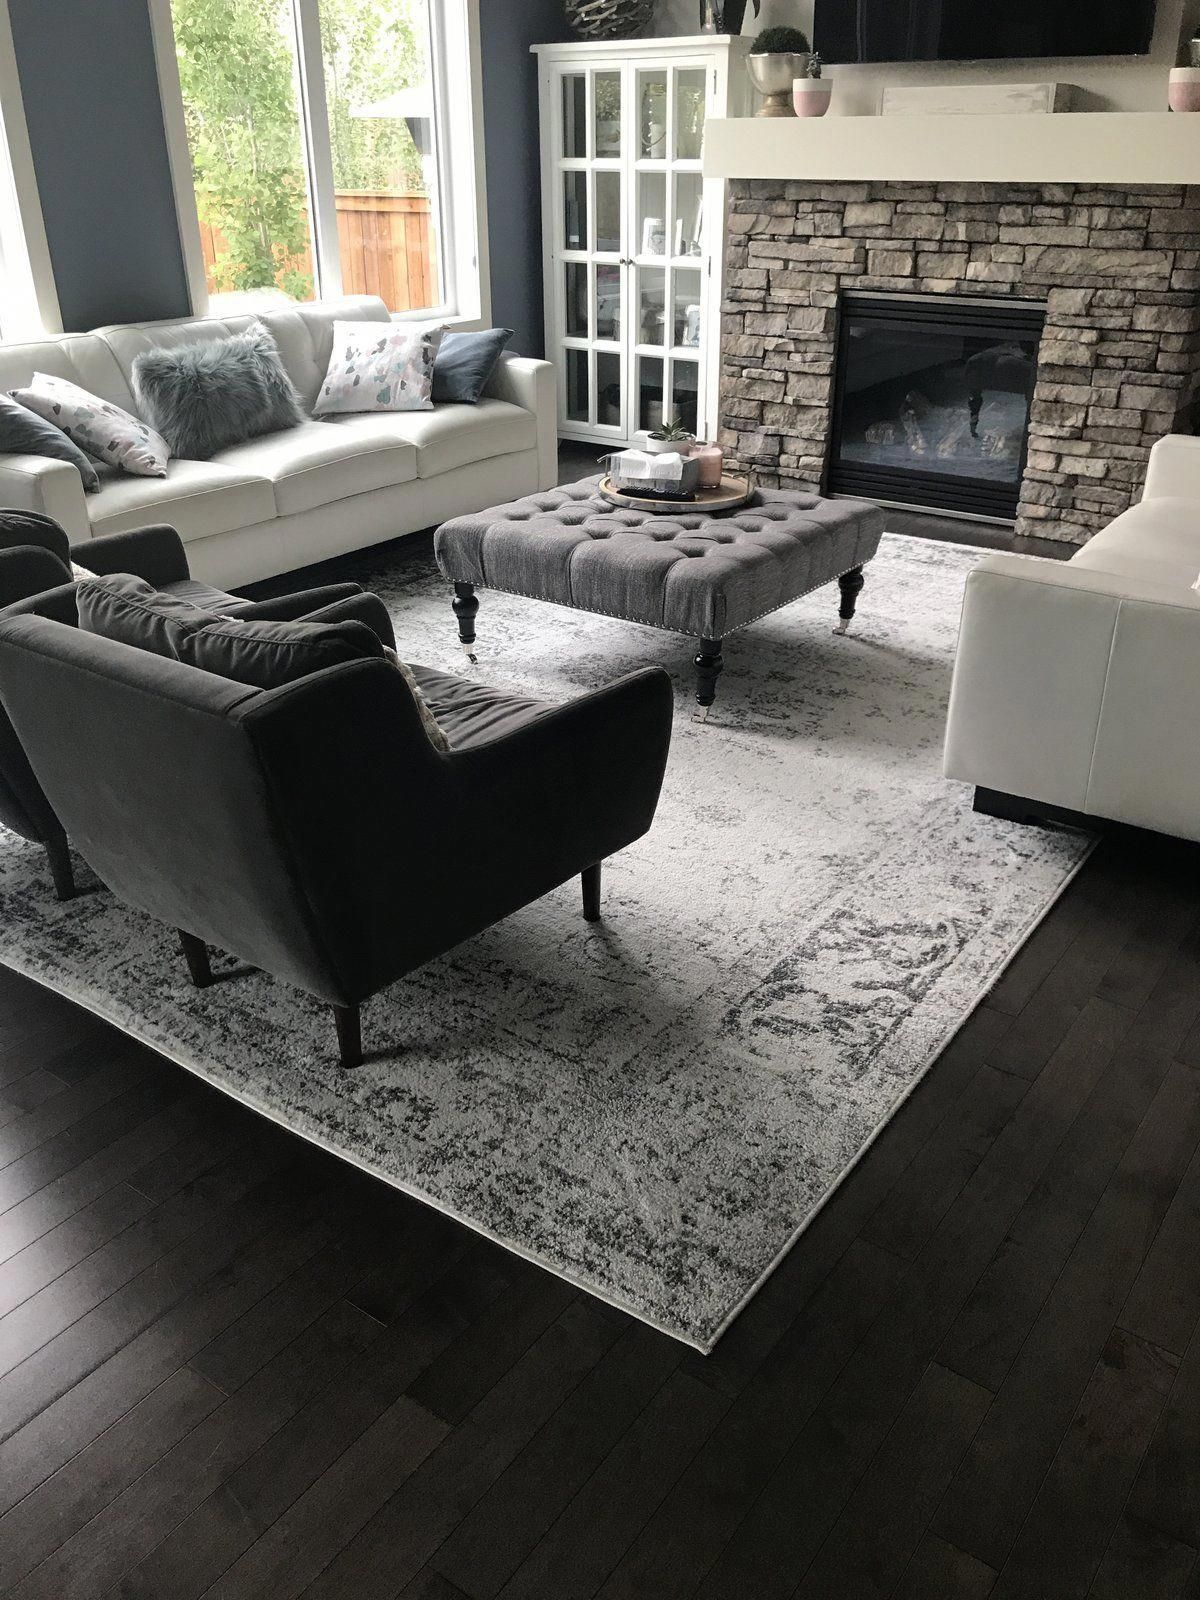 Rugs in living room - Farm house living room - Living room with